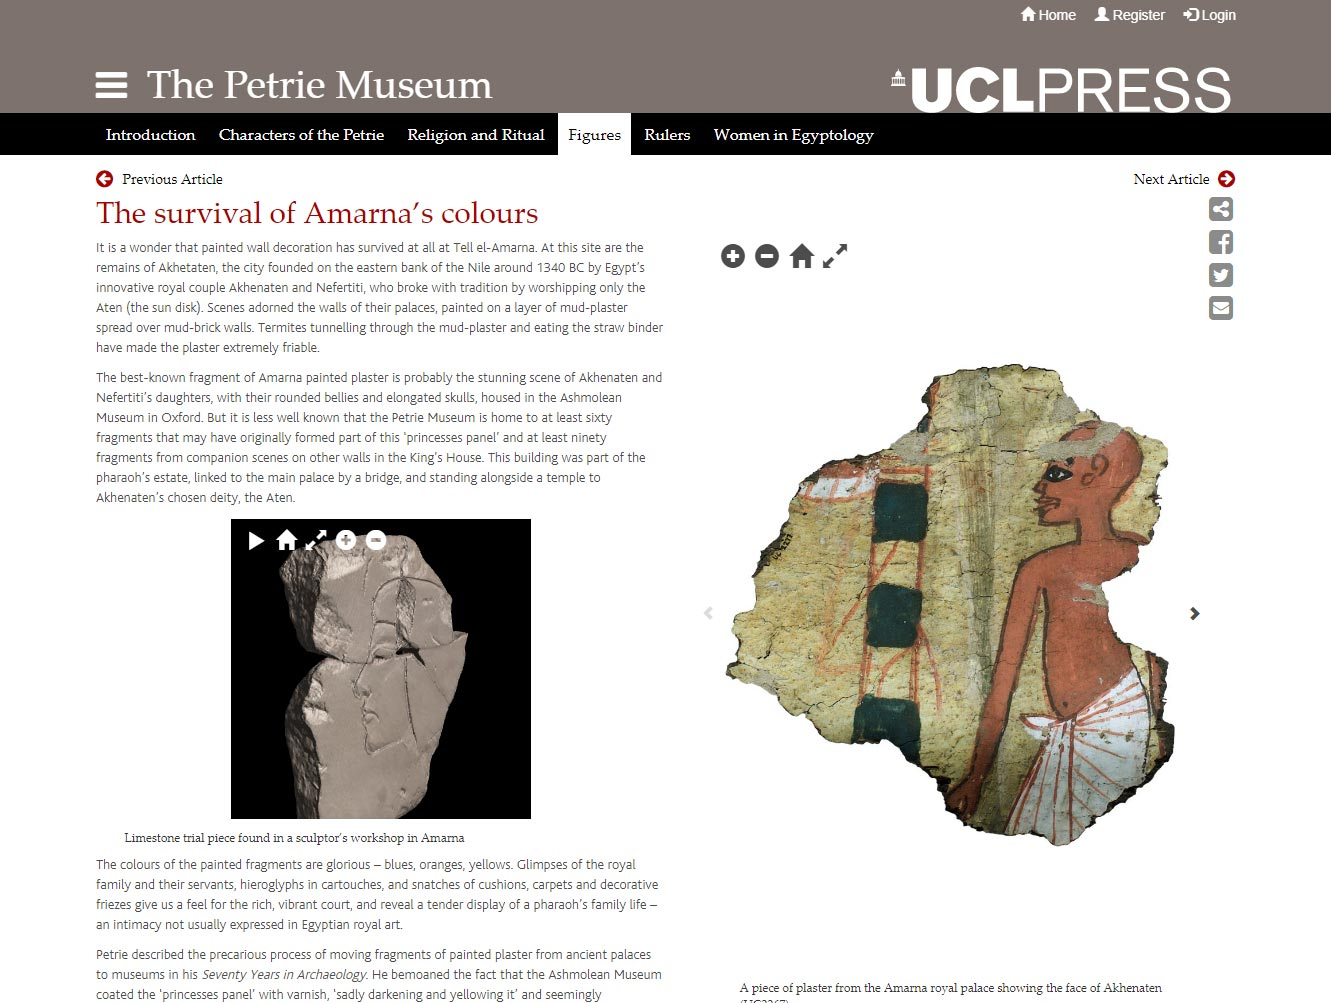 UCL Press 3D Objects